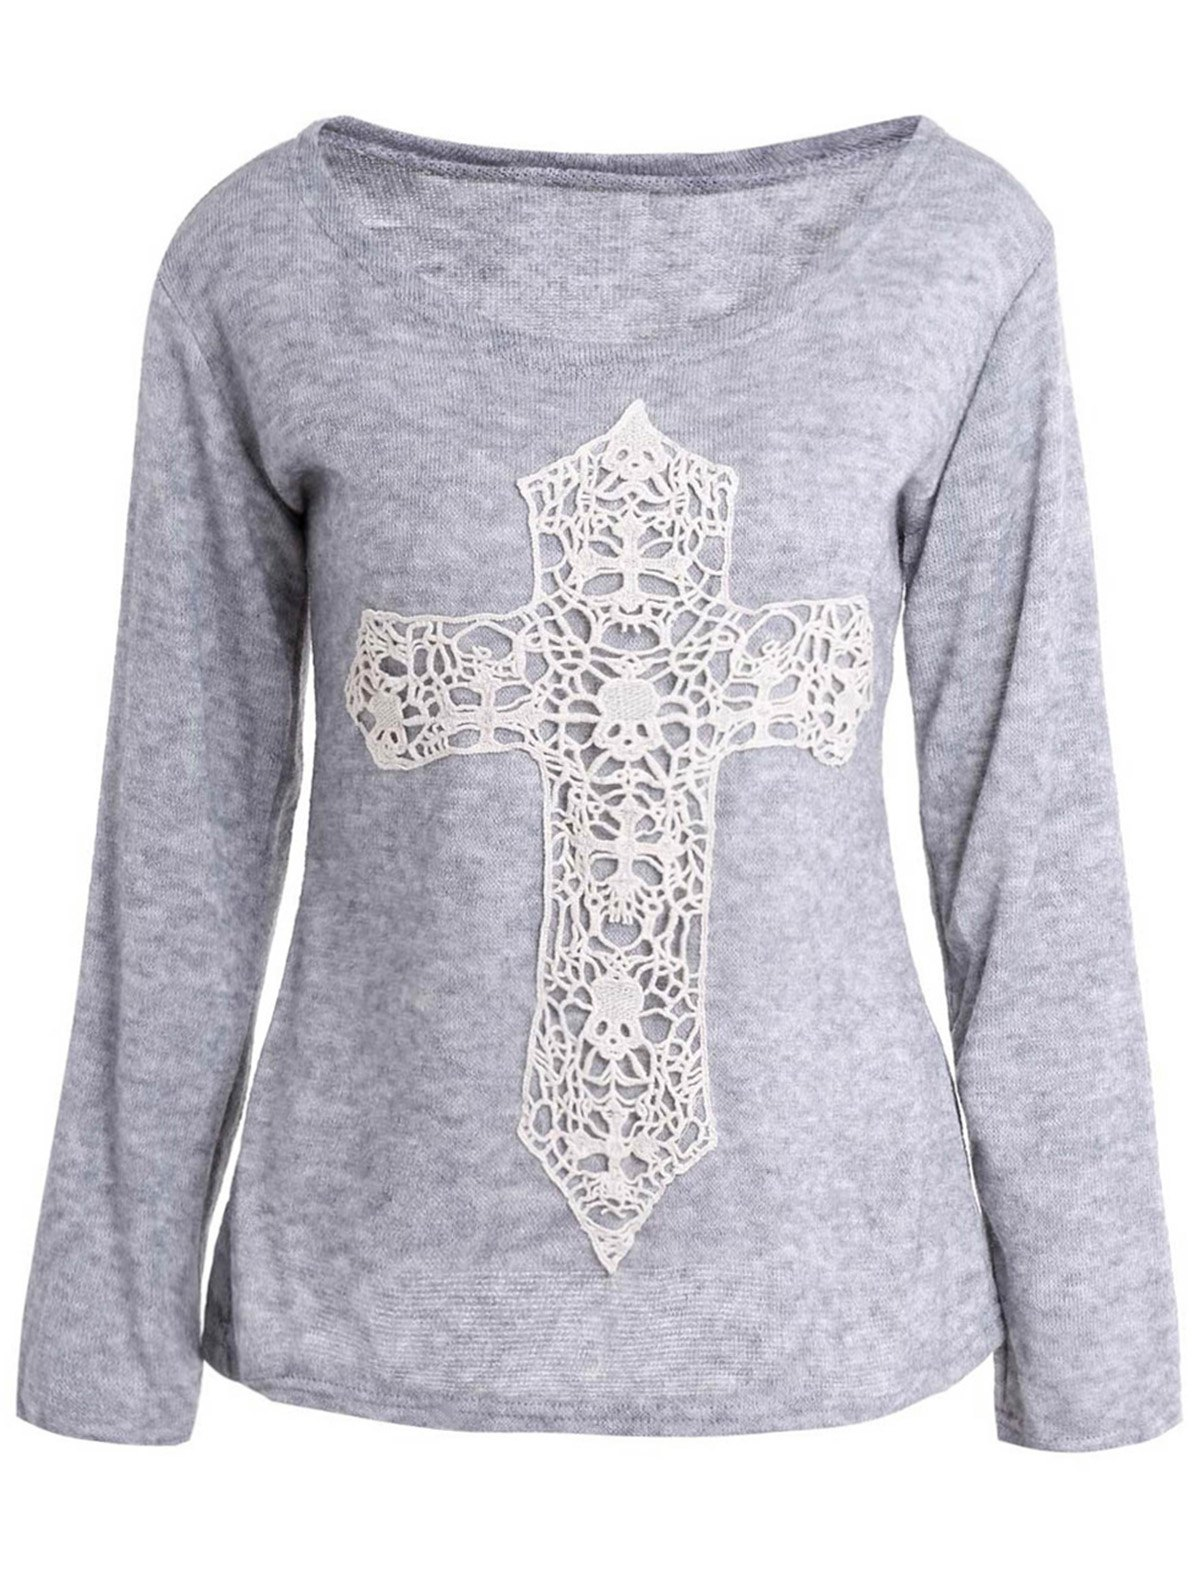 Fancy Casual Scoop Neck Laced Crucifix Pattern Long Sleeve T-Shirt For Women